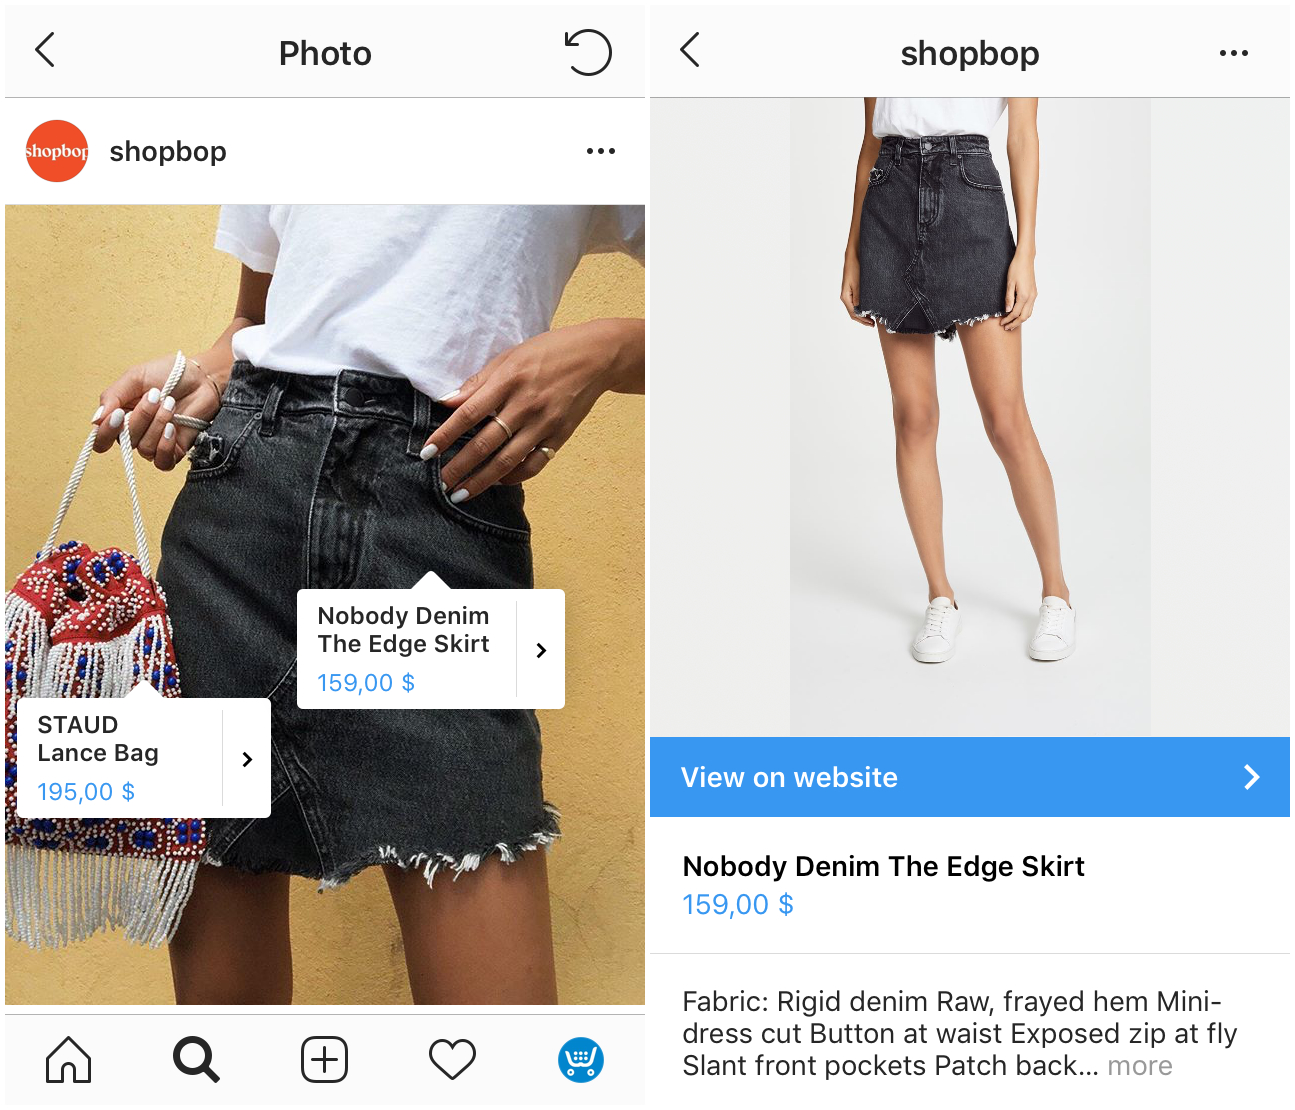 Example of shoppable posts on Instagram